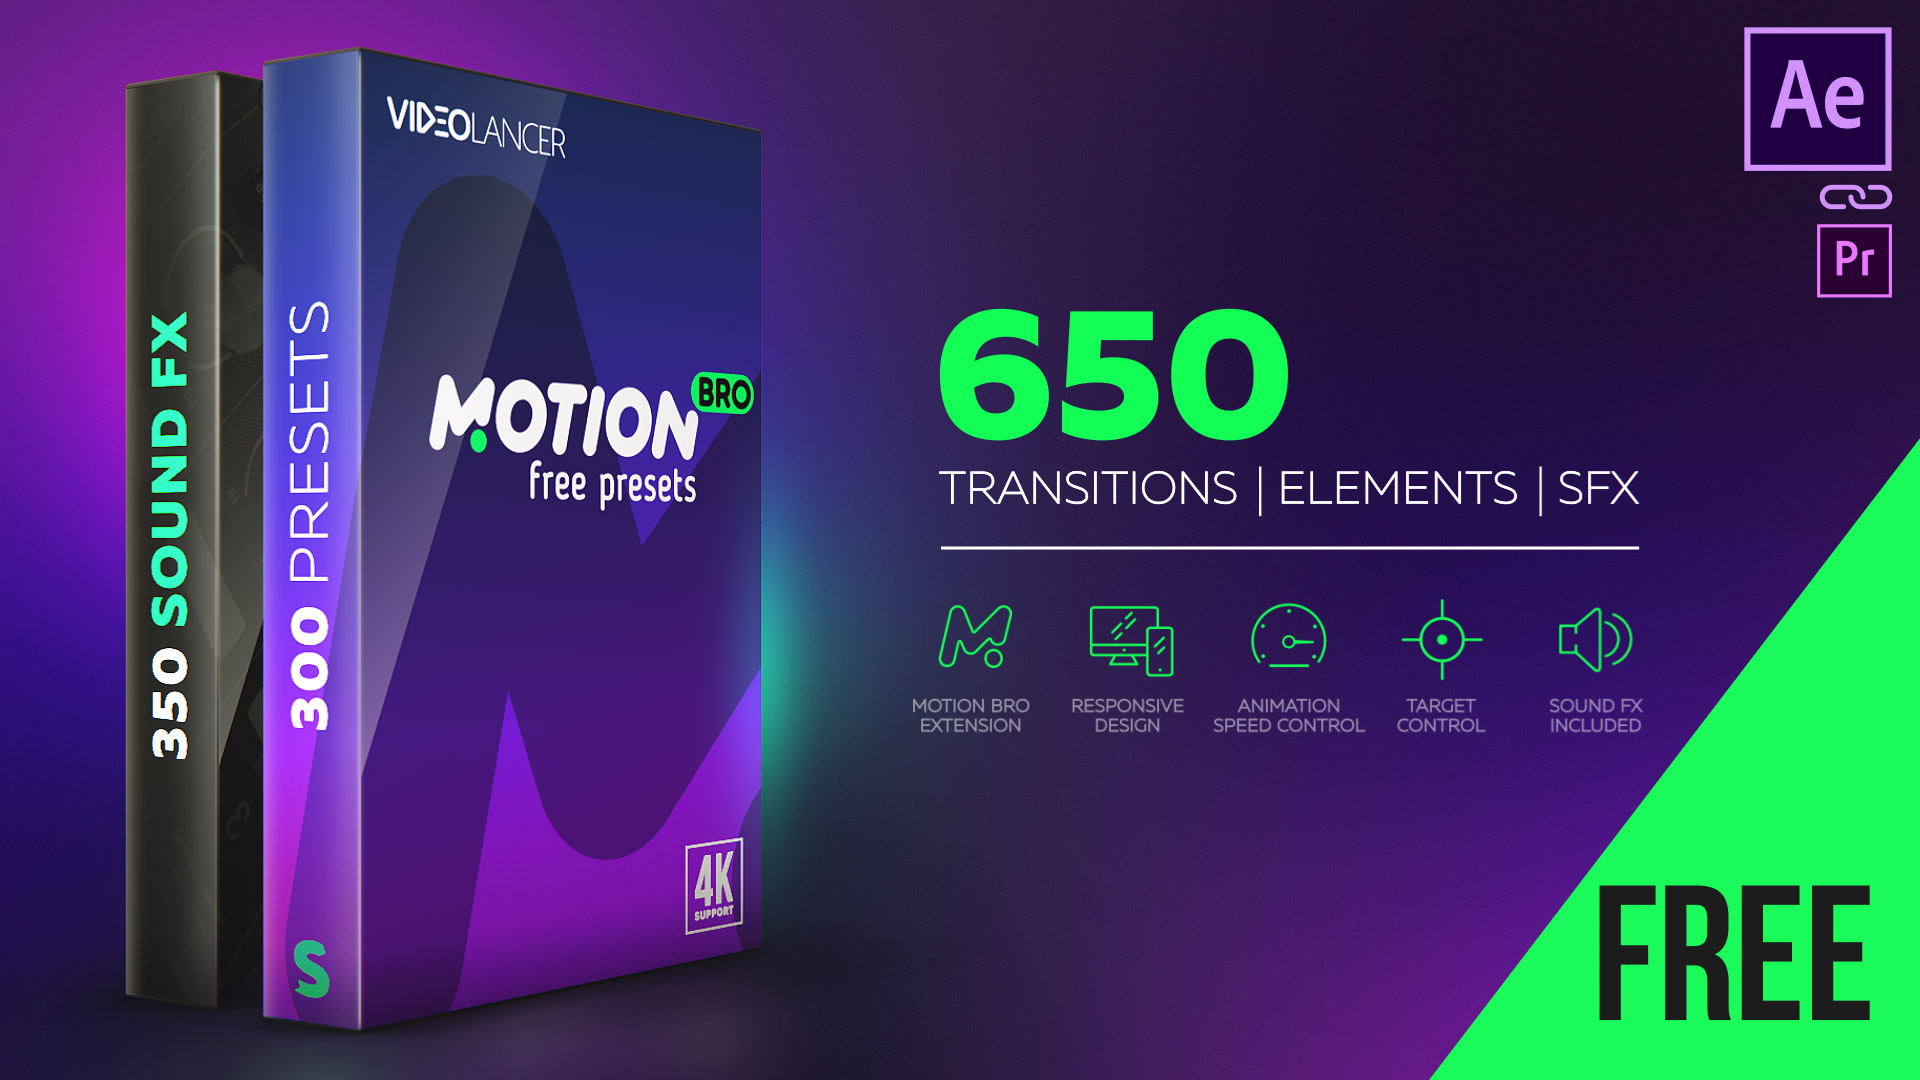 Free Presets Pack for Motion Bro – VIDEOLANCER